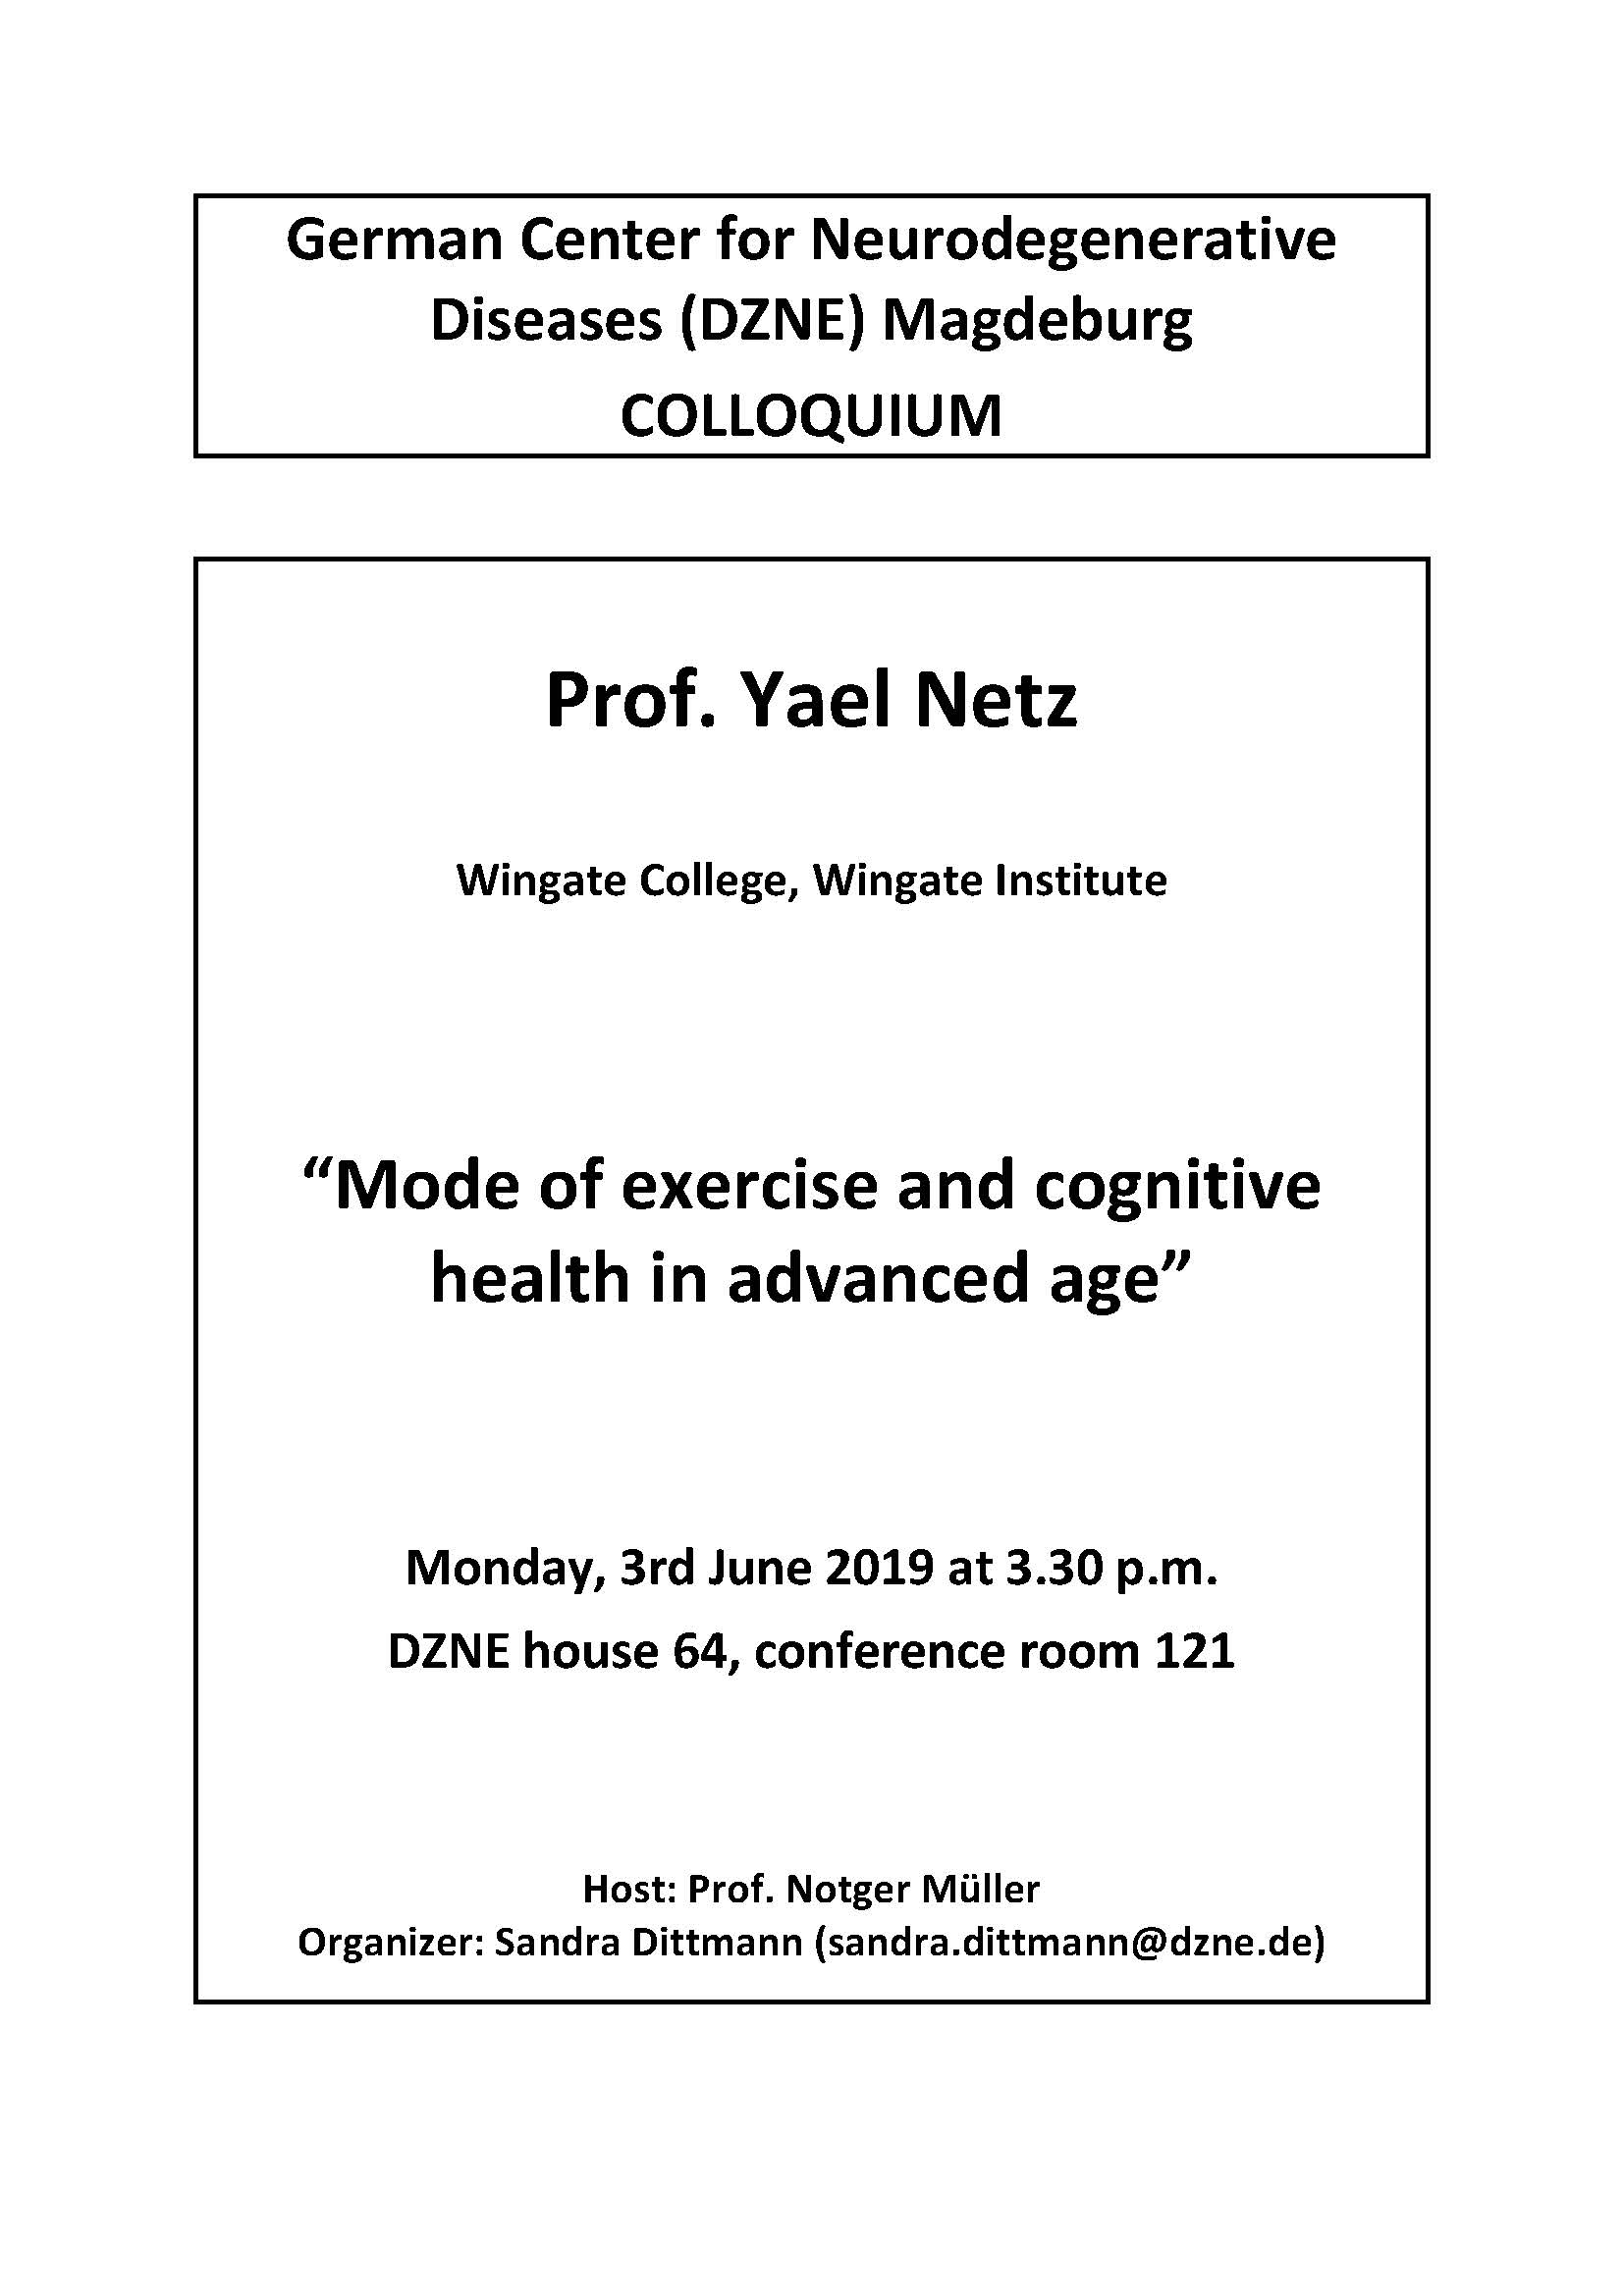 DZNE Colloquium: Mode of exercise and cognitive health in advanced age @ DZNE, House 64, conference room 121